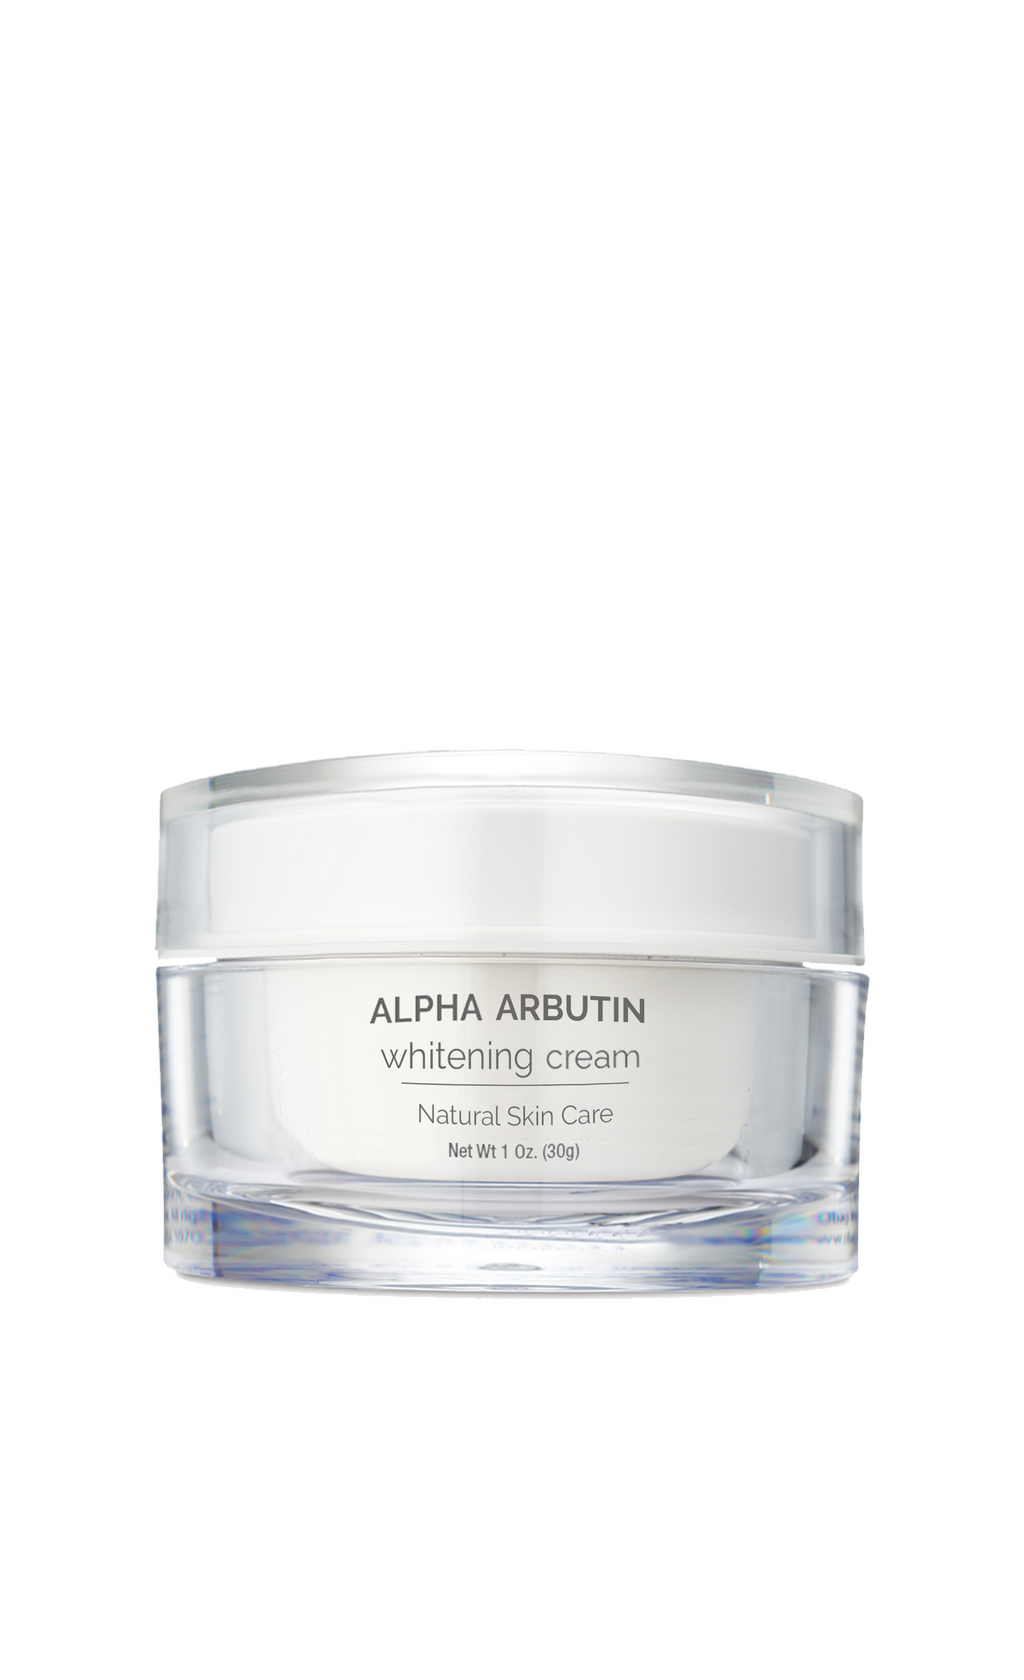 FM150003【改善美白面霜 | Alpha Arbutin Whitening Cream - Corrective Whitening Mask 】(30 ml)